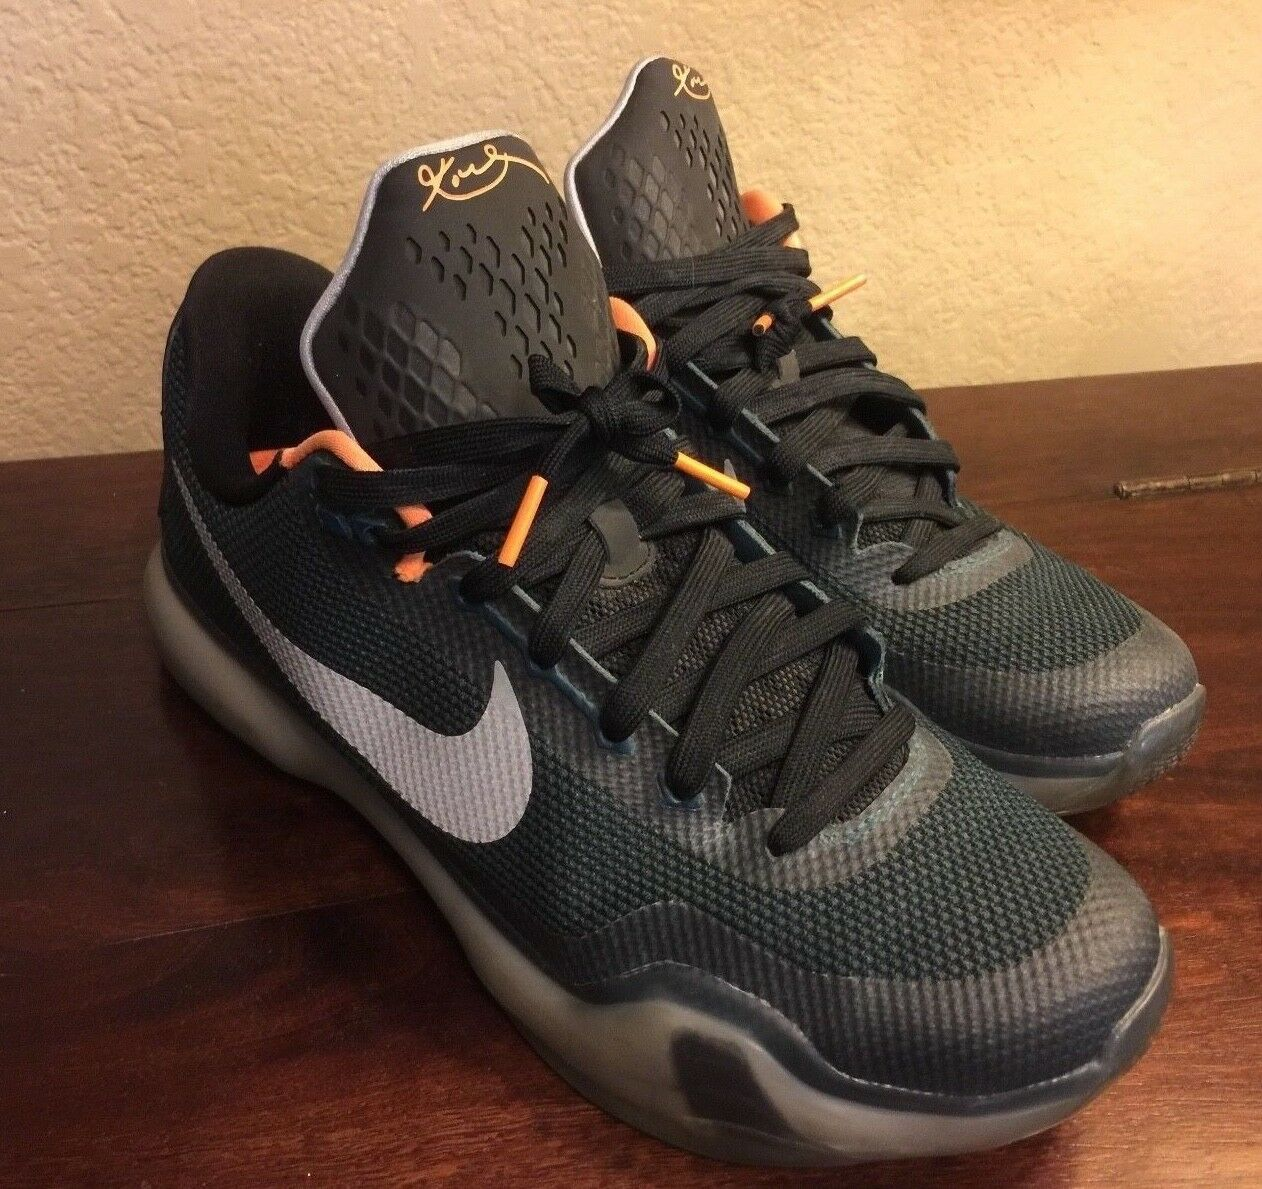 NIKE KOBE BRYANT X VINTAGE MENS MENS MENS SHOES SIZE 10.5 LIMITED EDITION COLOR SEGWAY 71ffcf